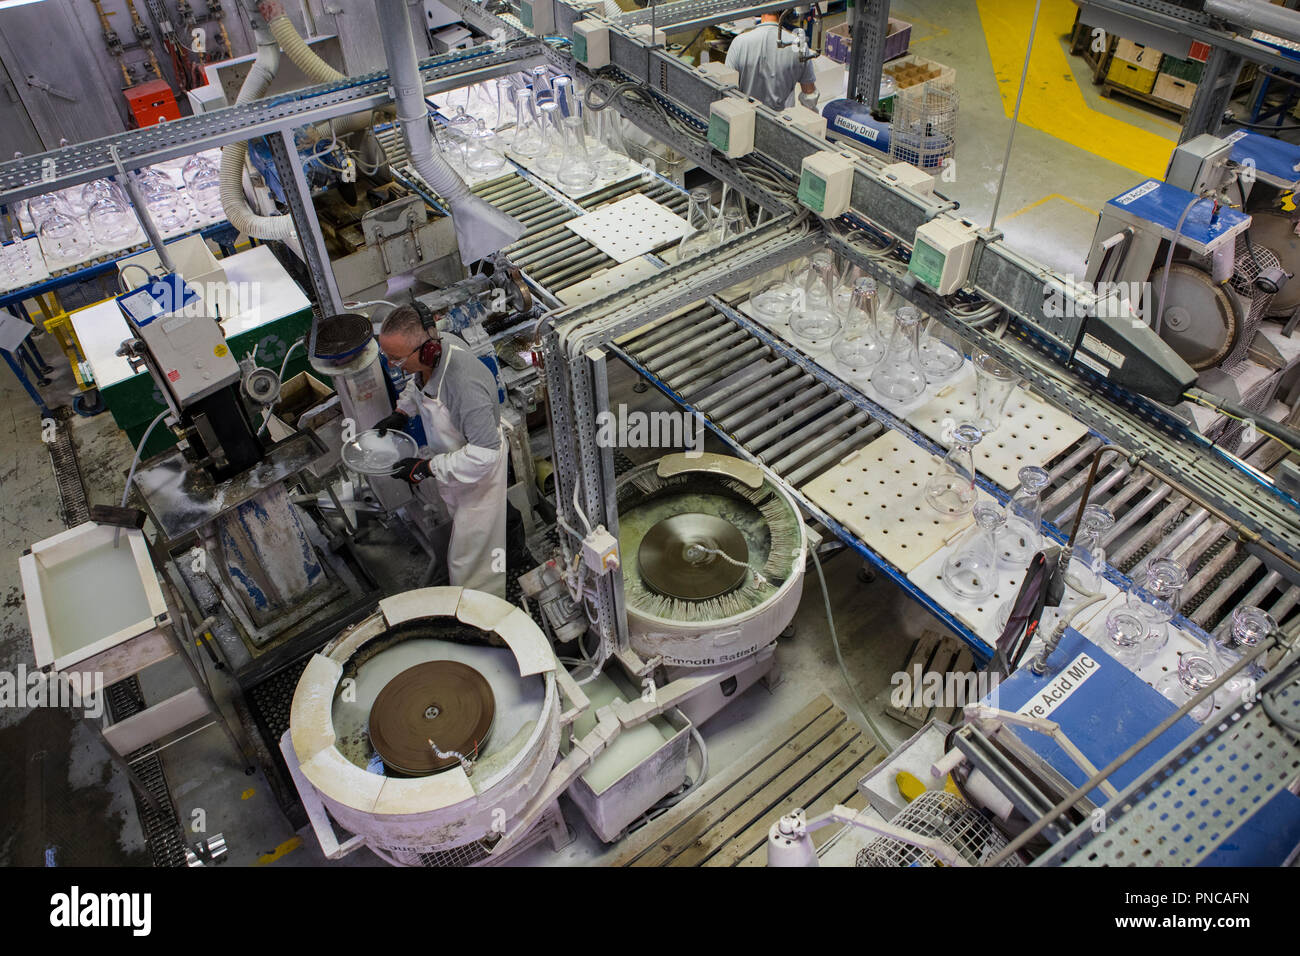 Waterford, Republic of Ireland - August 15th 2018: The Quality Inspection Department in the Waterford Crystal factory, in the city of Waterford, Repub - Stock Image